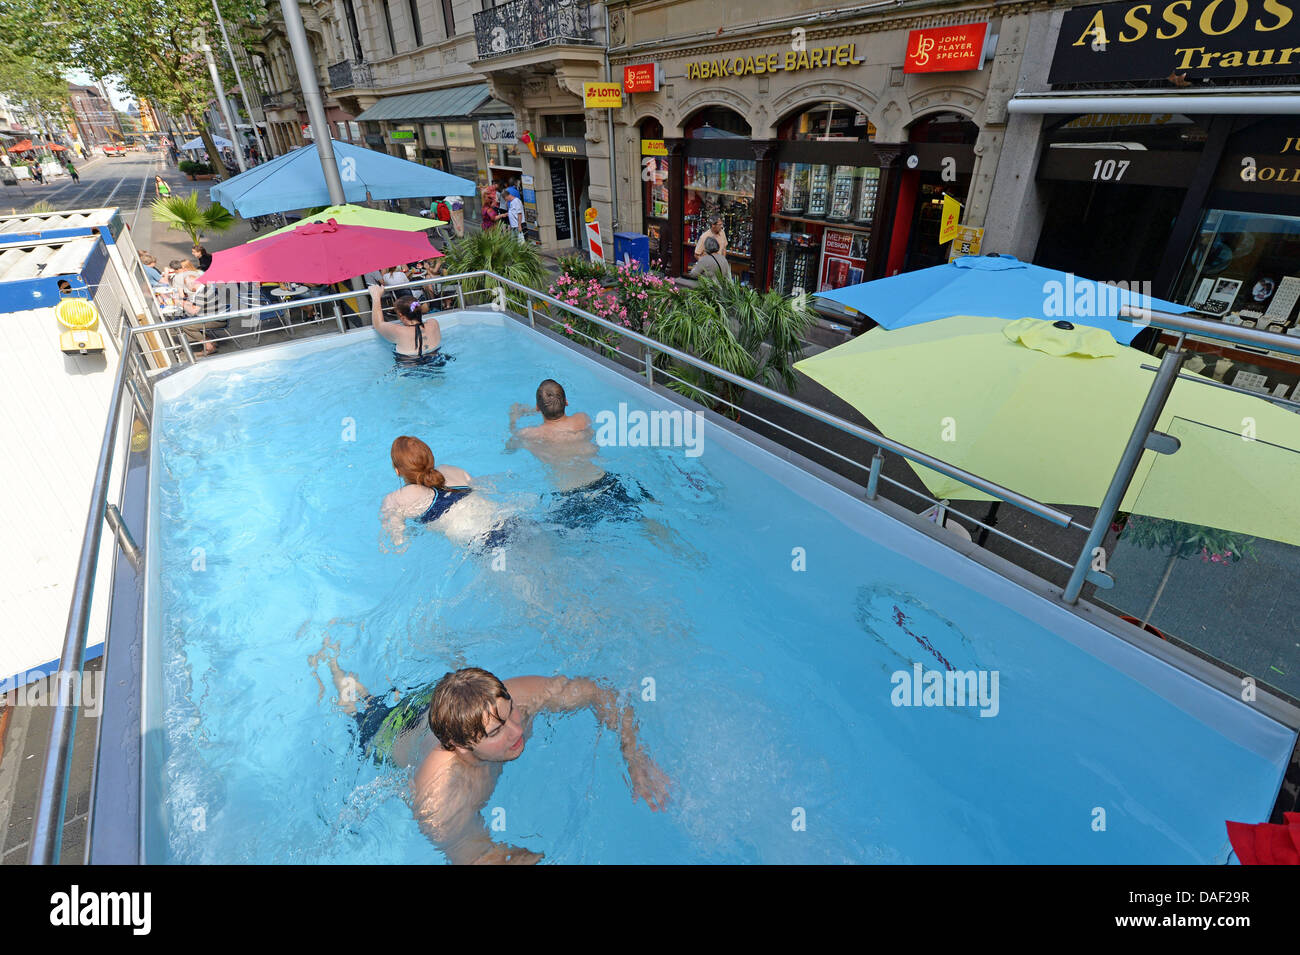 Karlsruhe germany 11th july 2013 people go for a swim in a mobile stock photo 58108787 alamy - Seecontainer pool ...